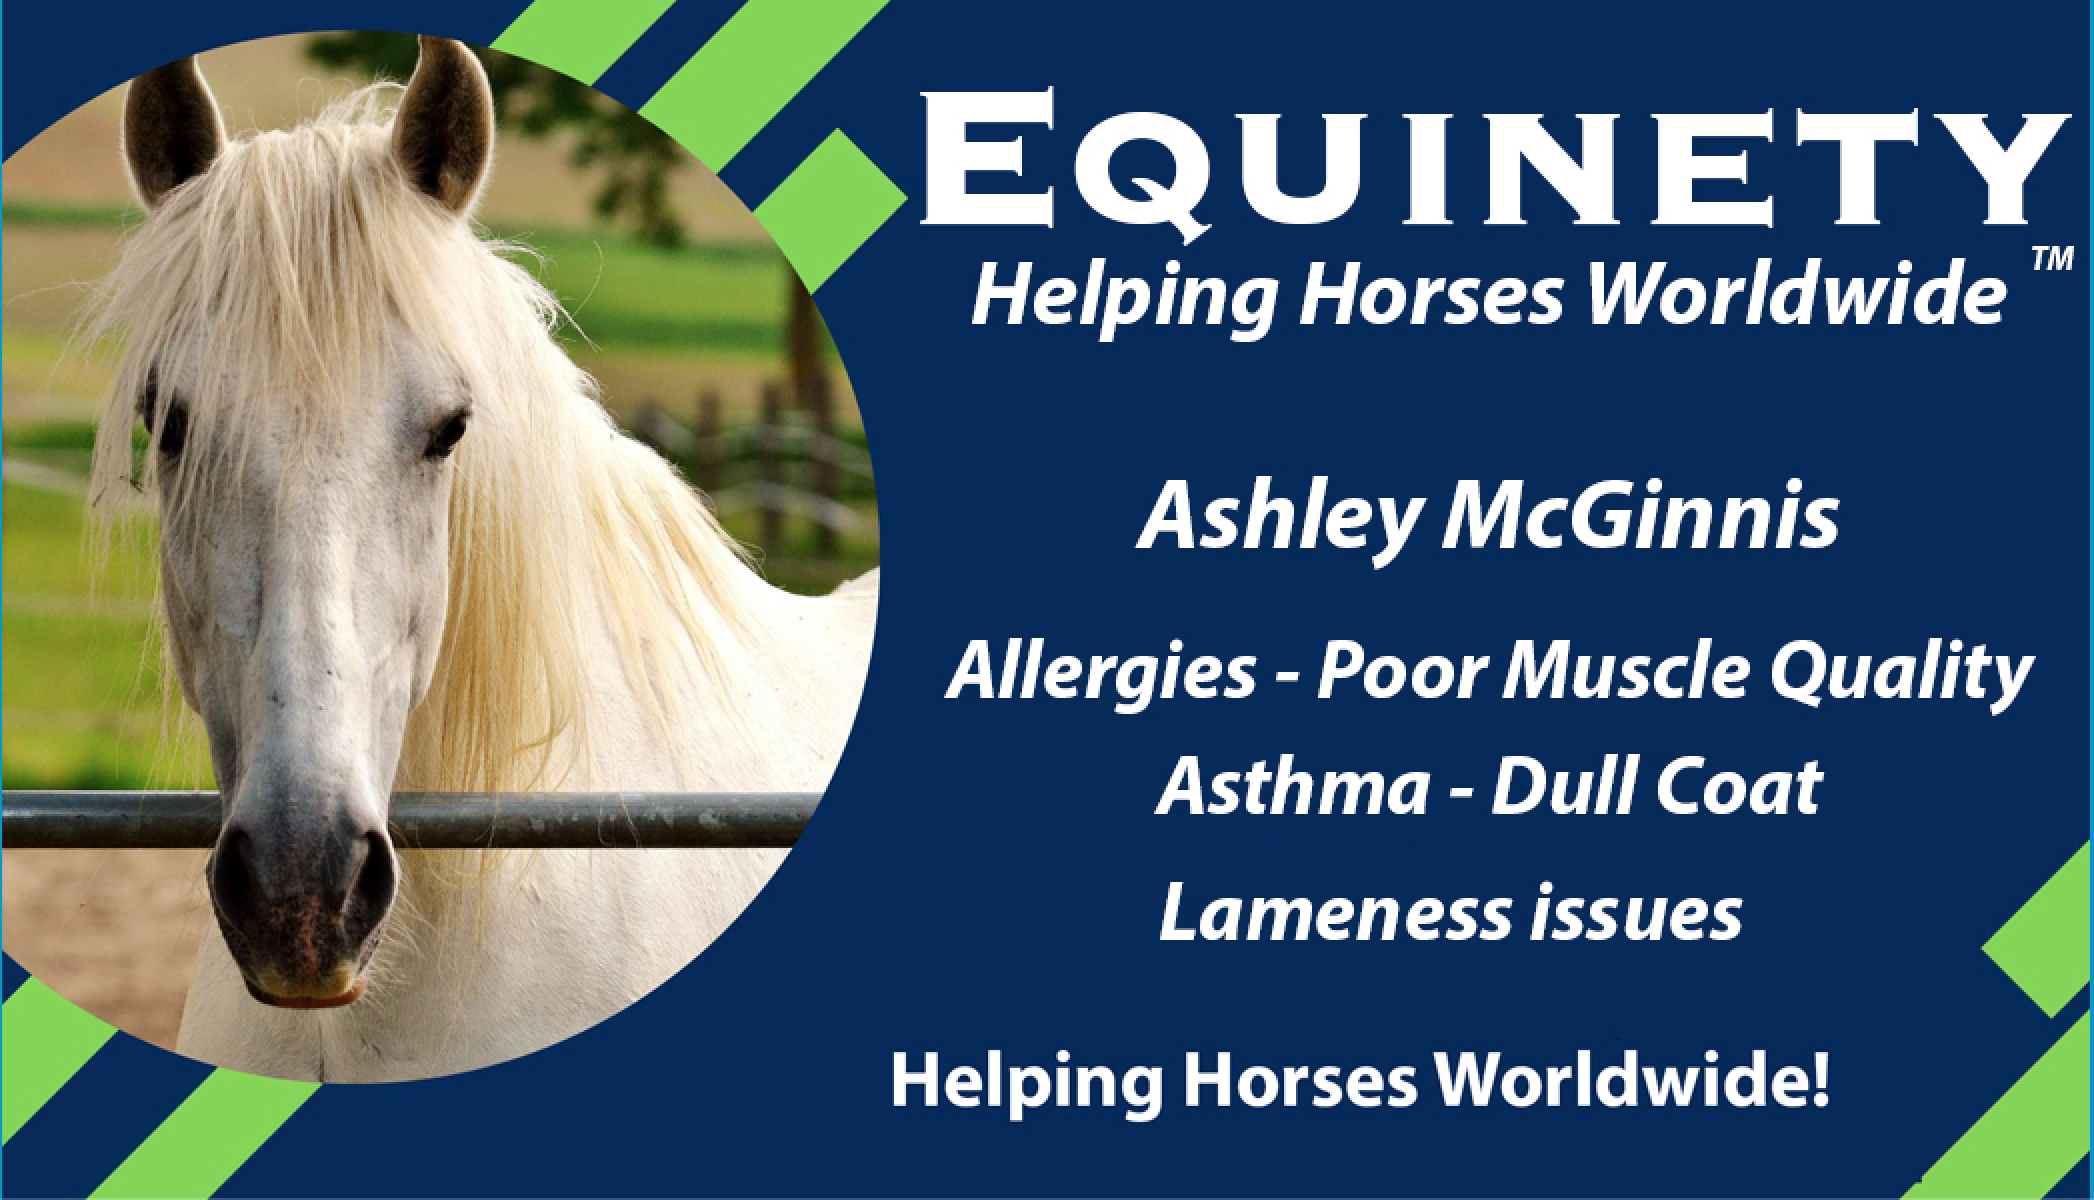 Ashley McGinnis – Major Allergies issues – Poor Muscle Quality - Asthma – Dull Coat – Lameness issues